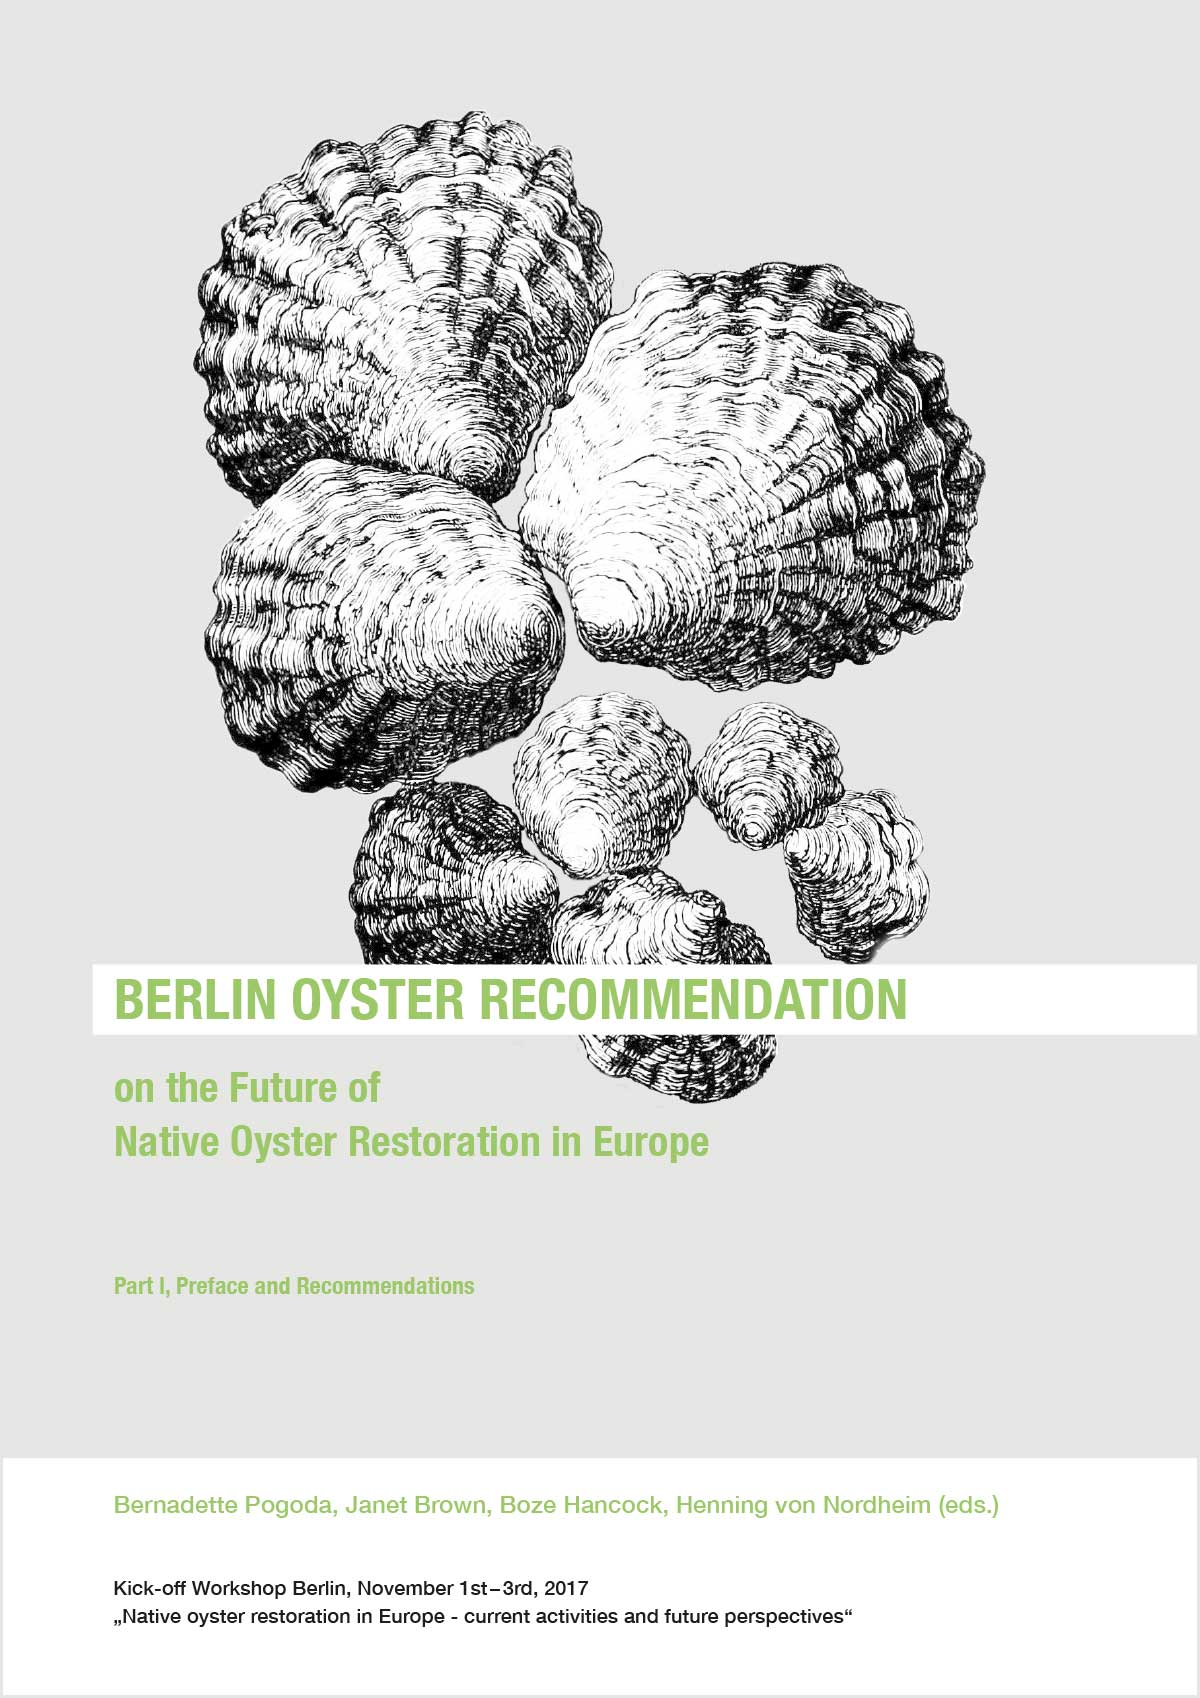 The Berlin Oyster Recommendation